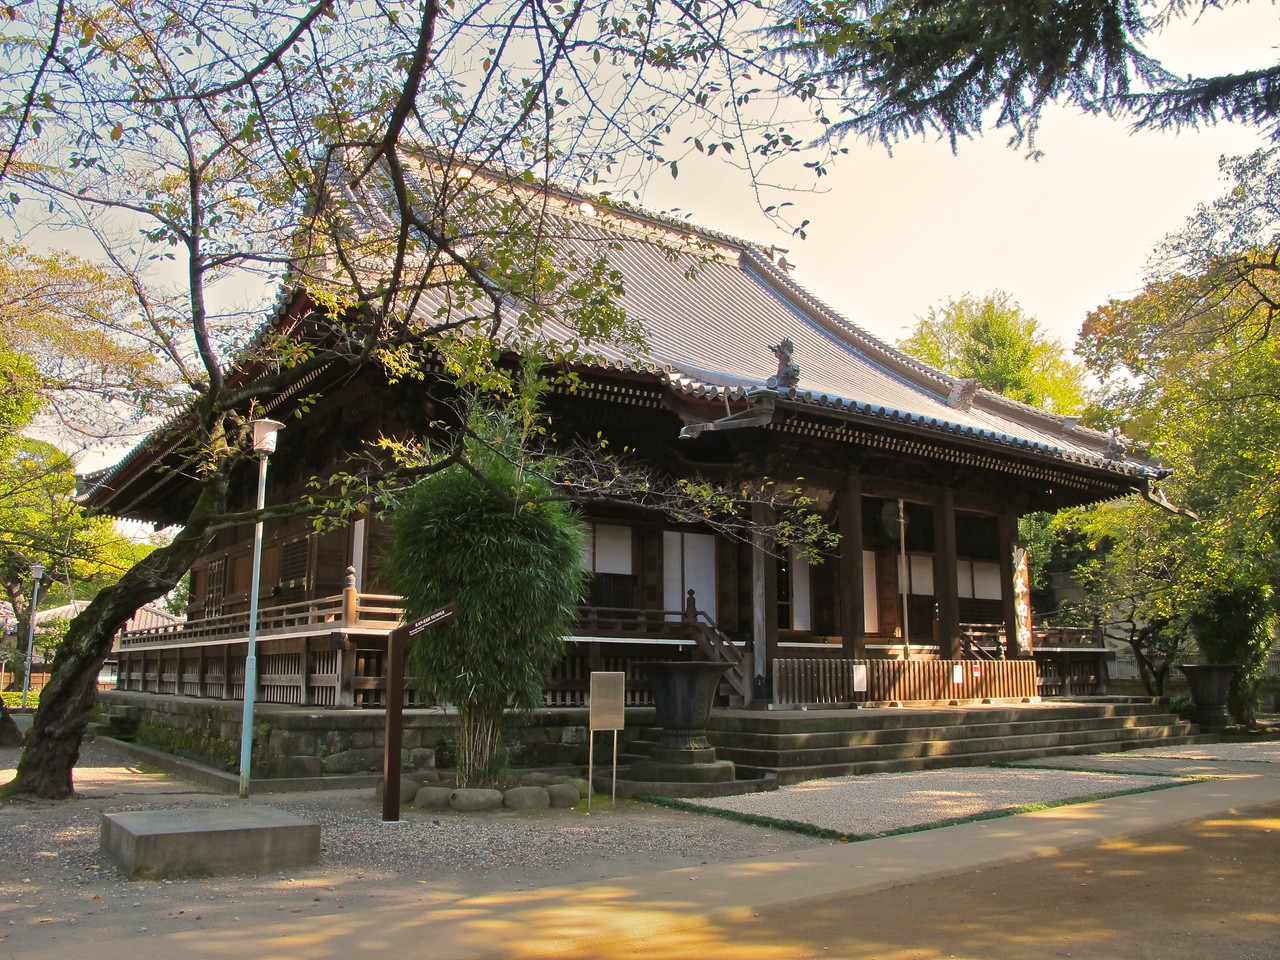 This is the Kaneji Temple in Ueno Park.